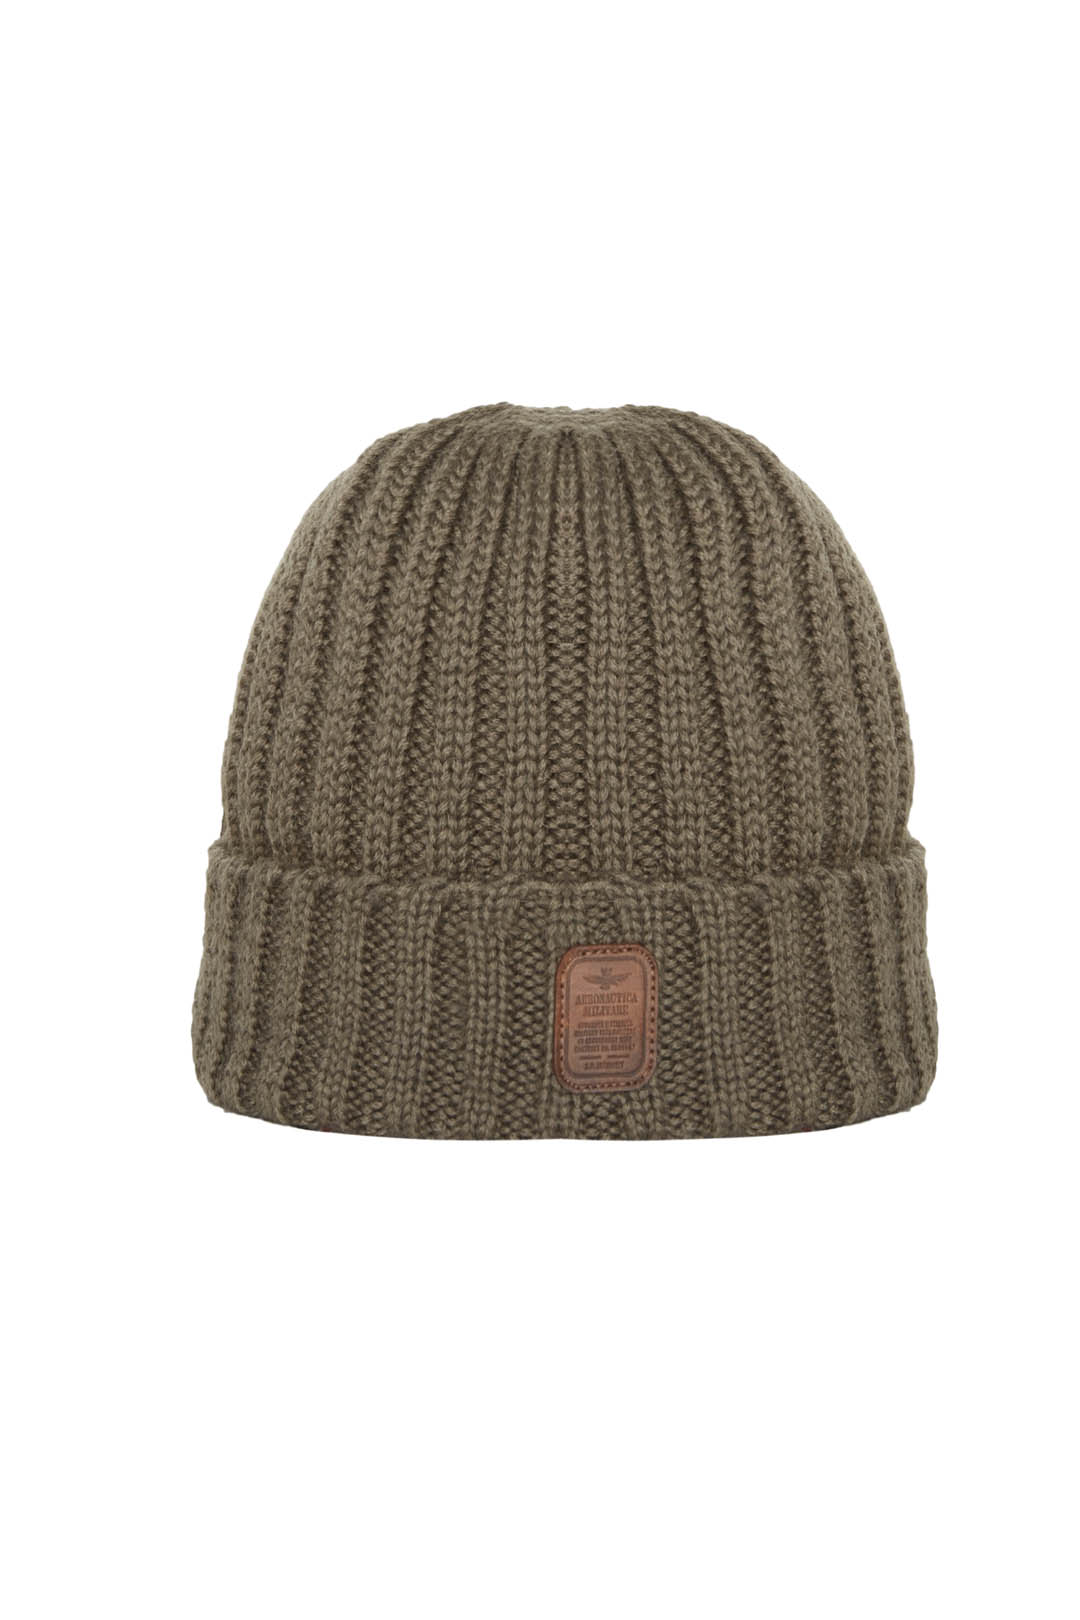 Wool knit cap with leather patch         1